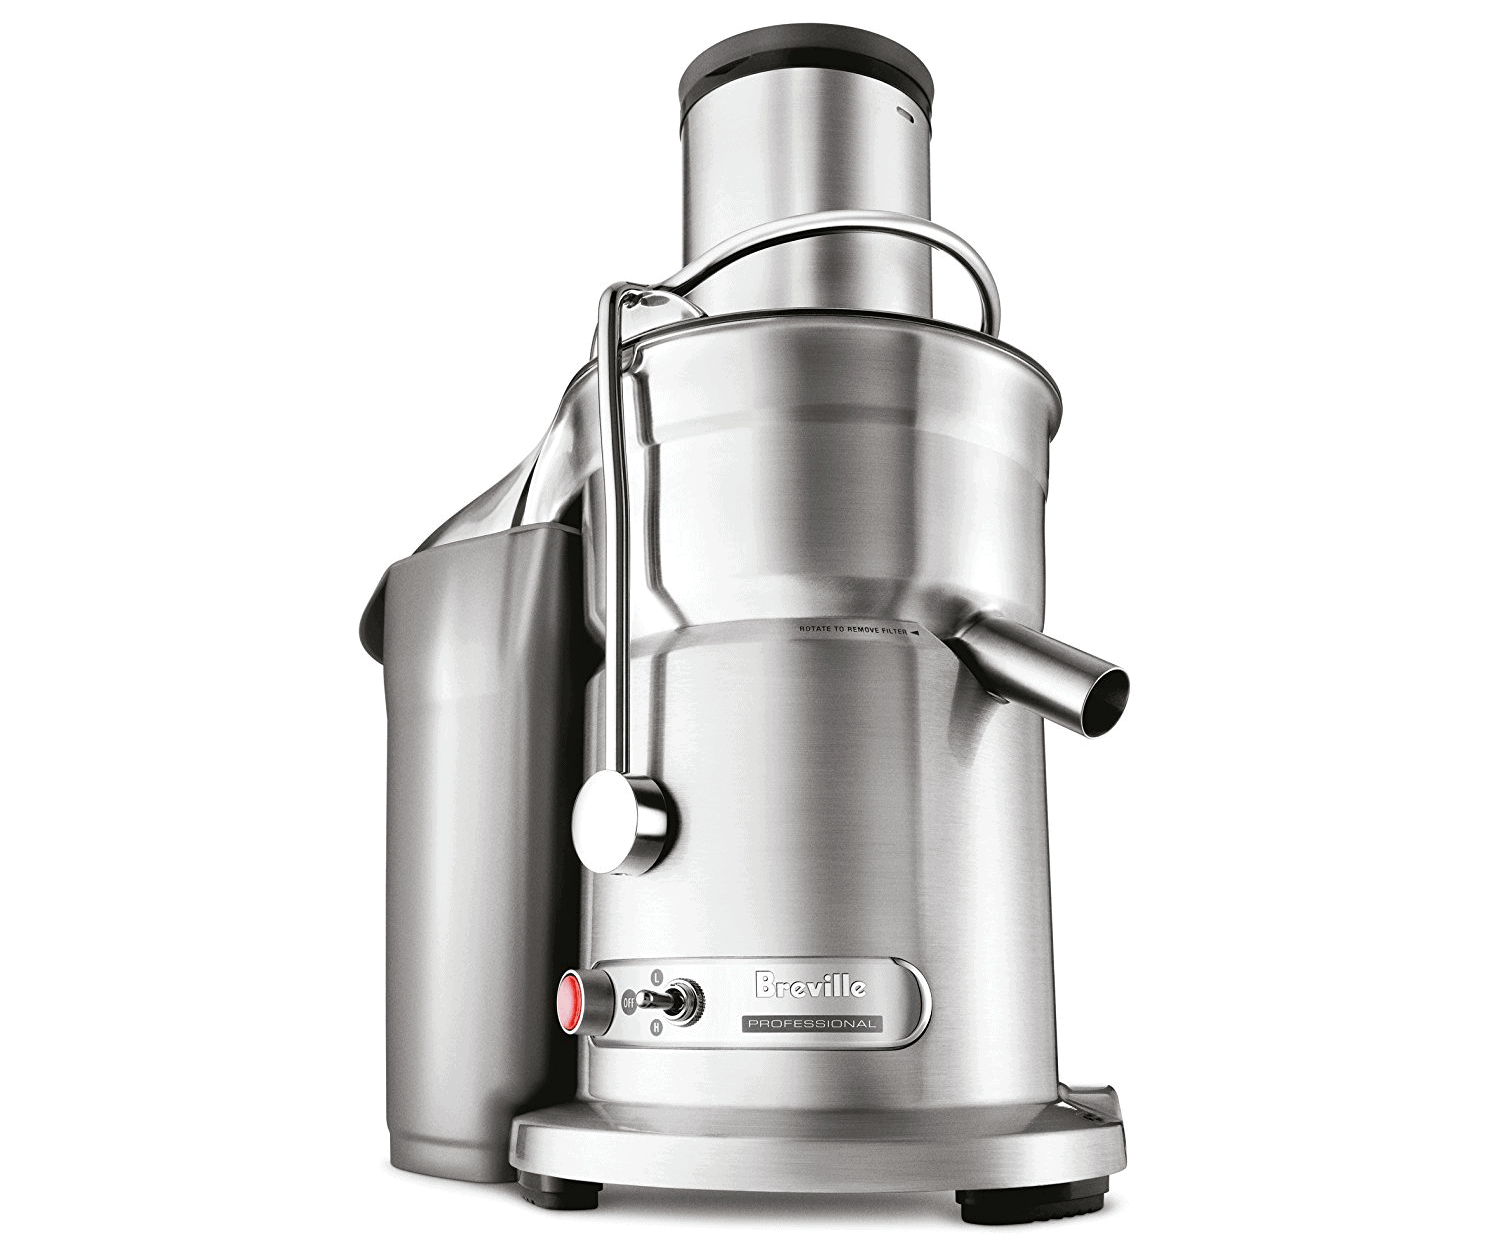 centrifugal vs masticating juicer